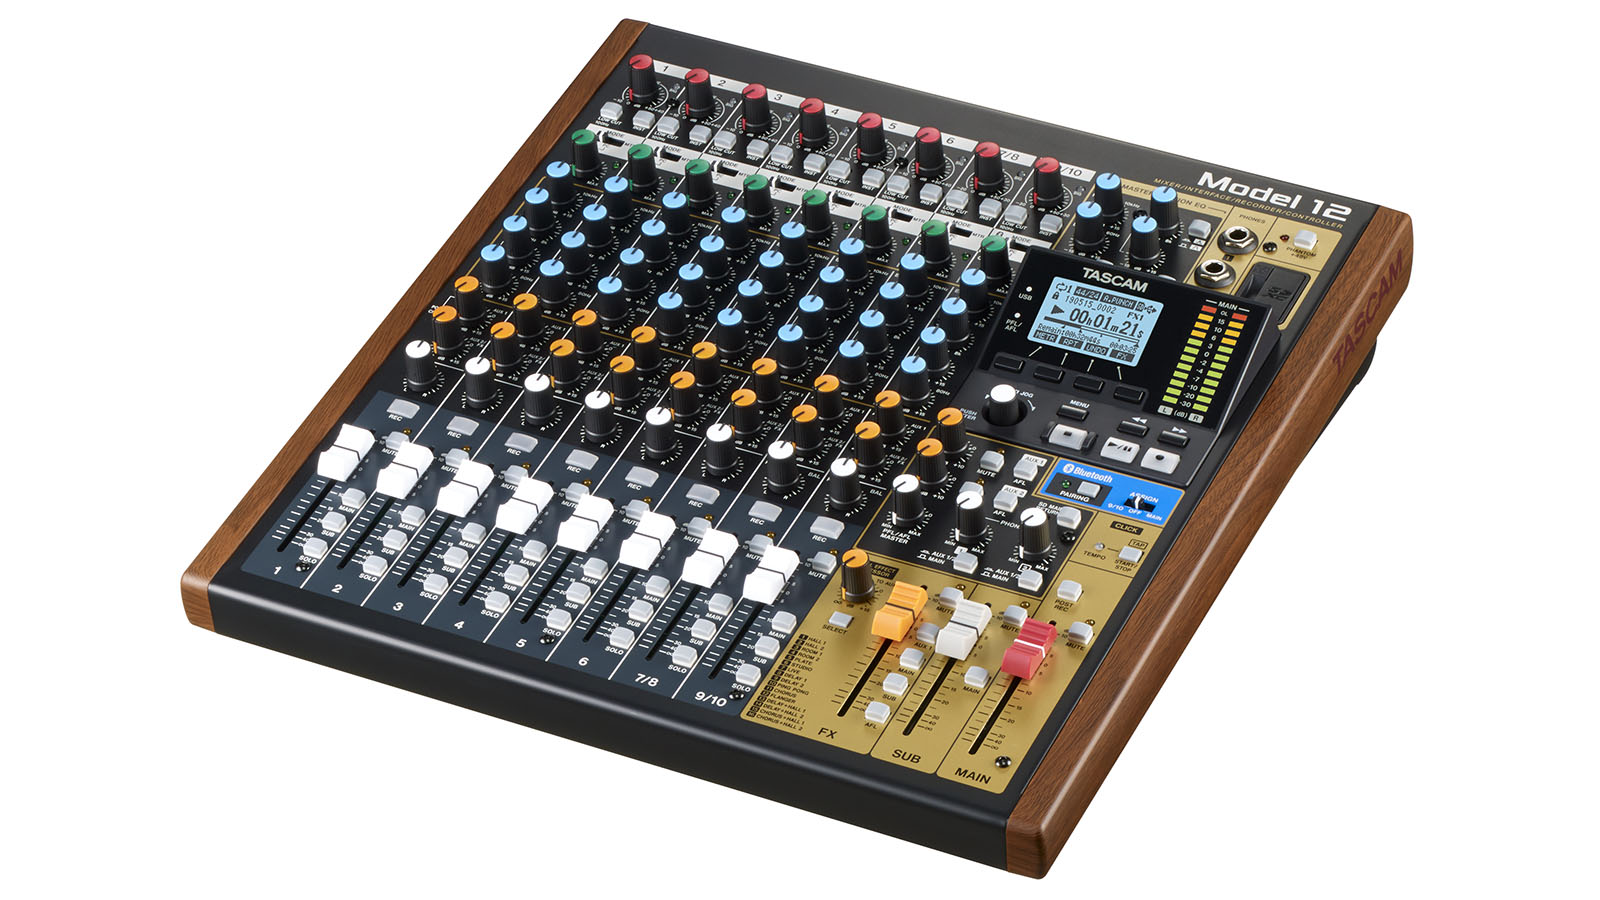 NAMM 2020: Tascam's Model 12 is a multitrack mixer and recorder at a keen price point